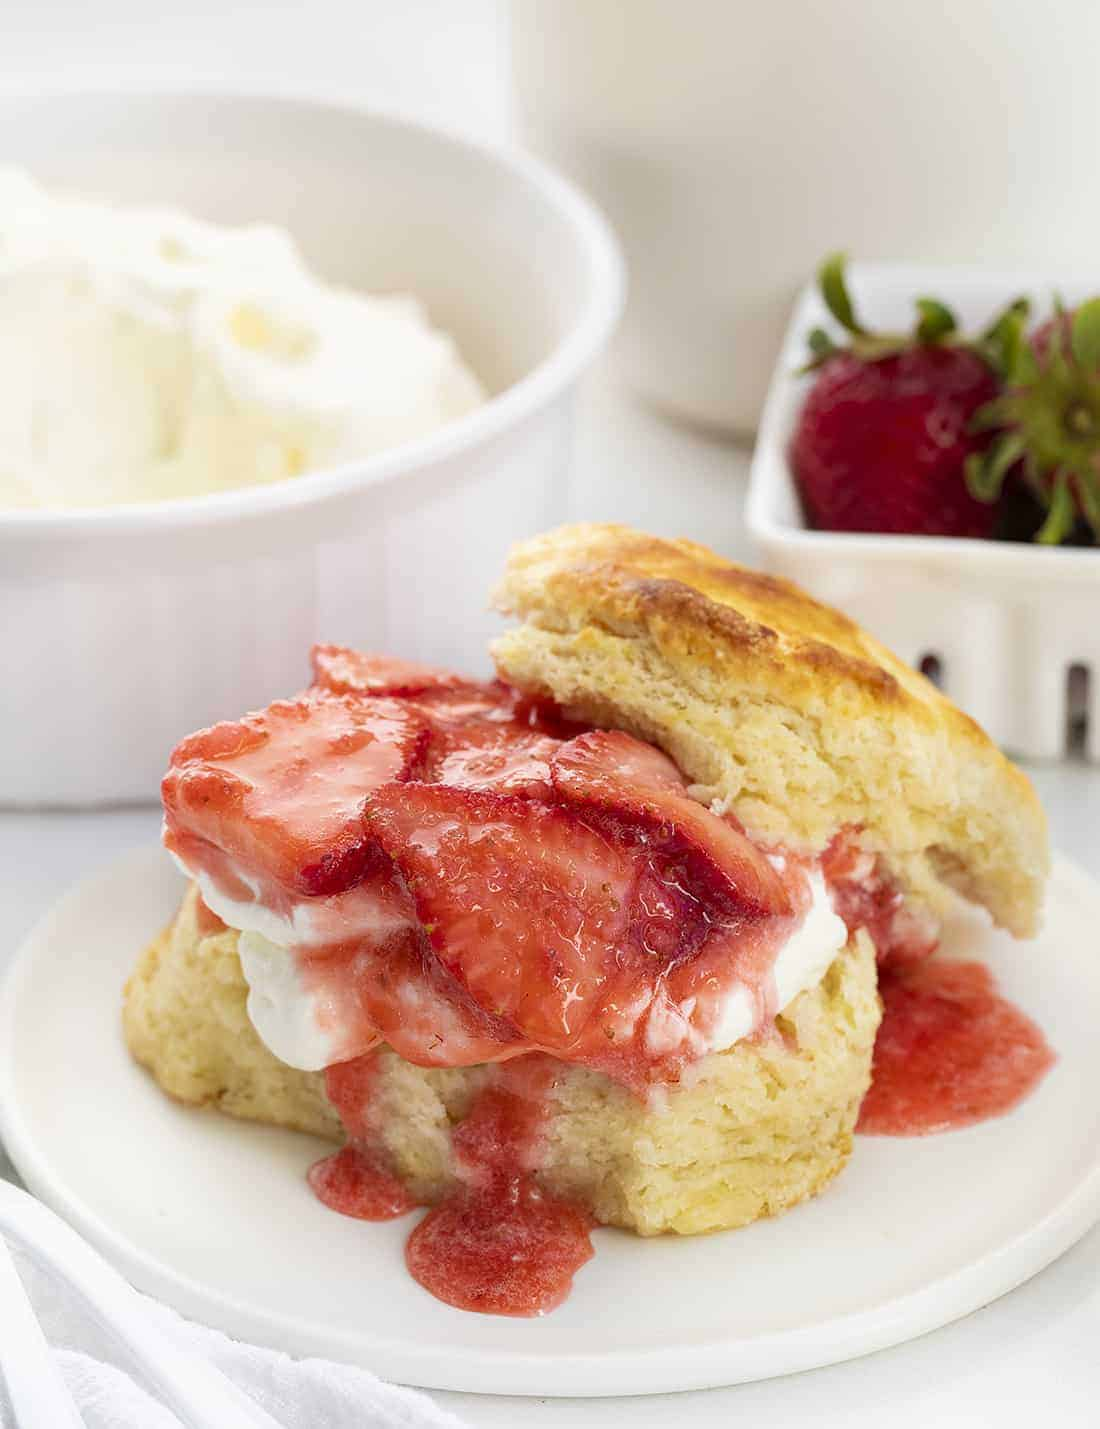 Authentic Strawberry Shortcake Recipe